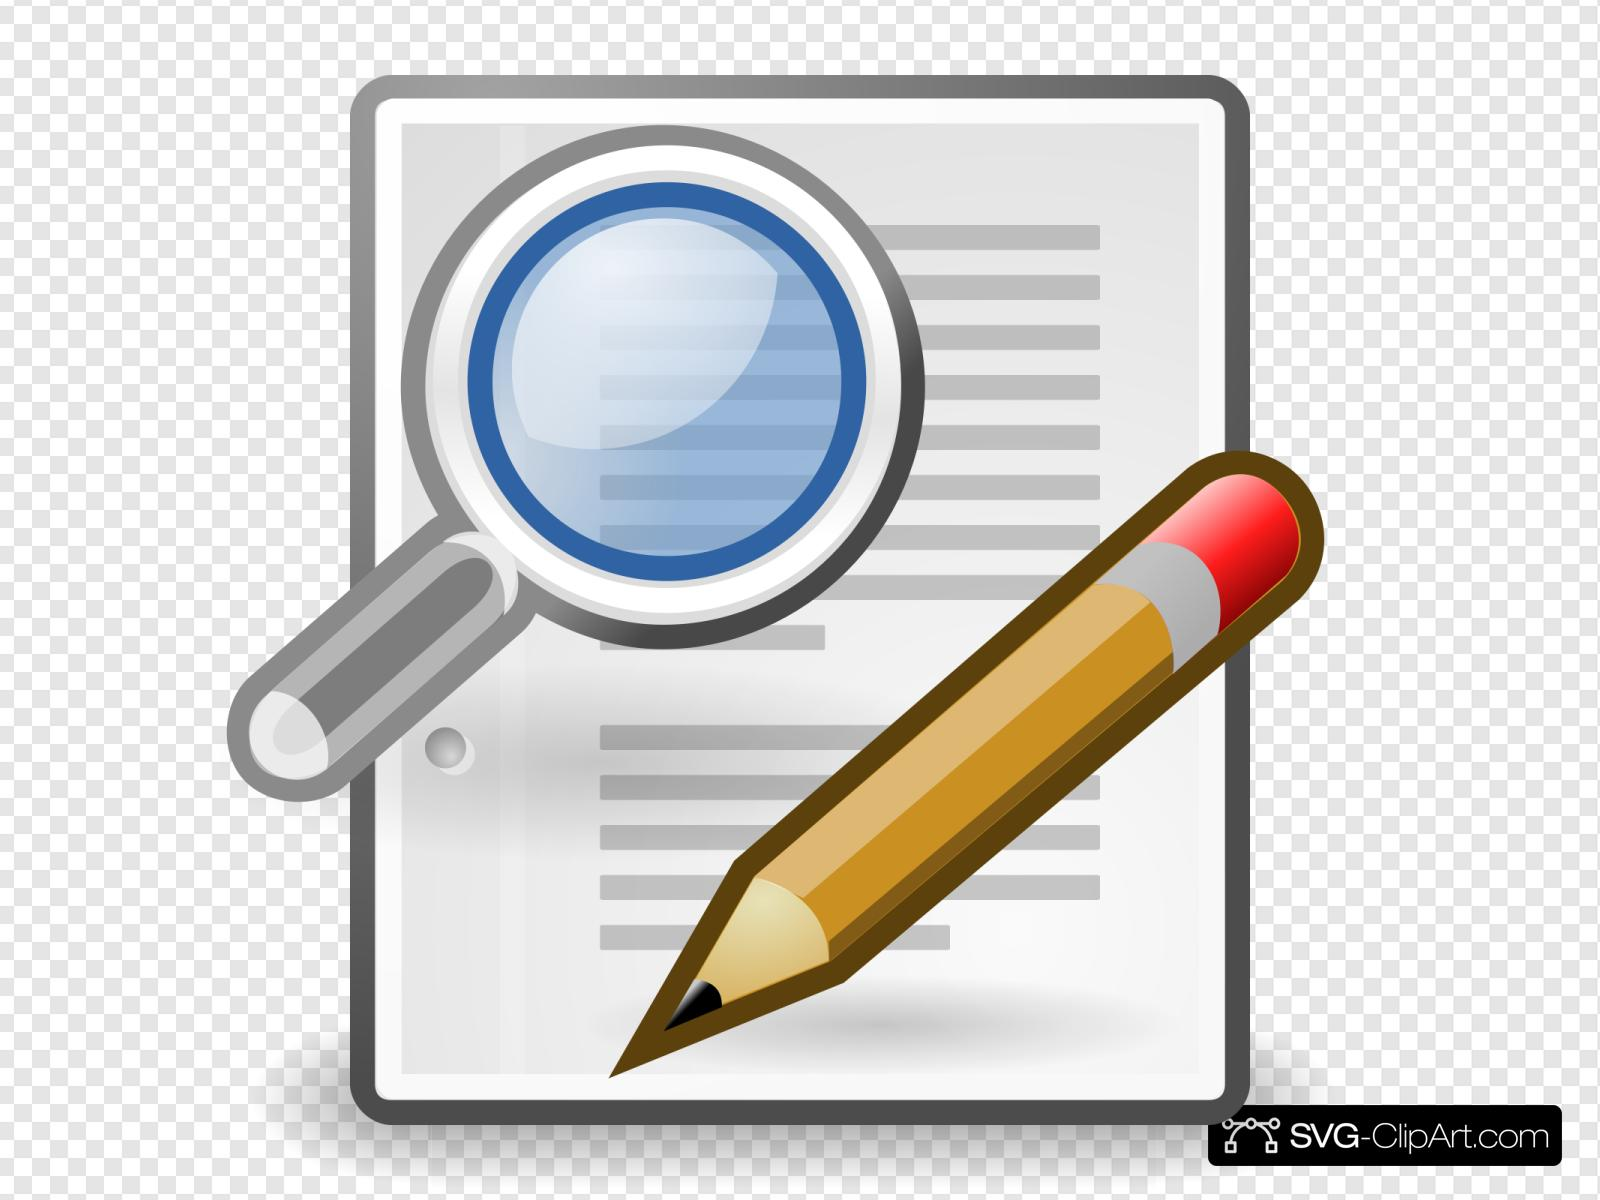 Edit Find Replace Clip art, Icon and SVG - SVG Clipart png royalty free